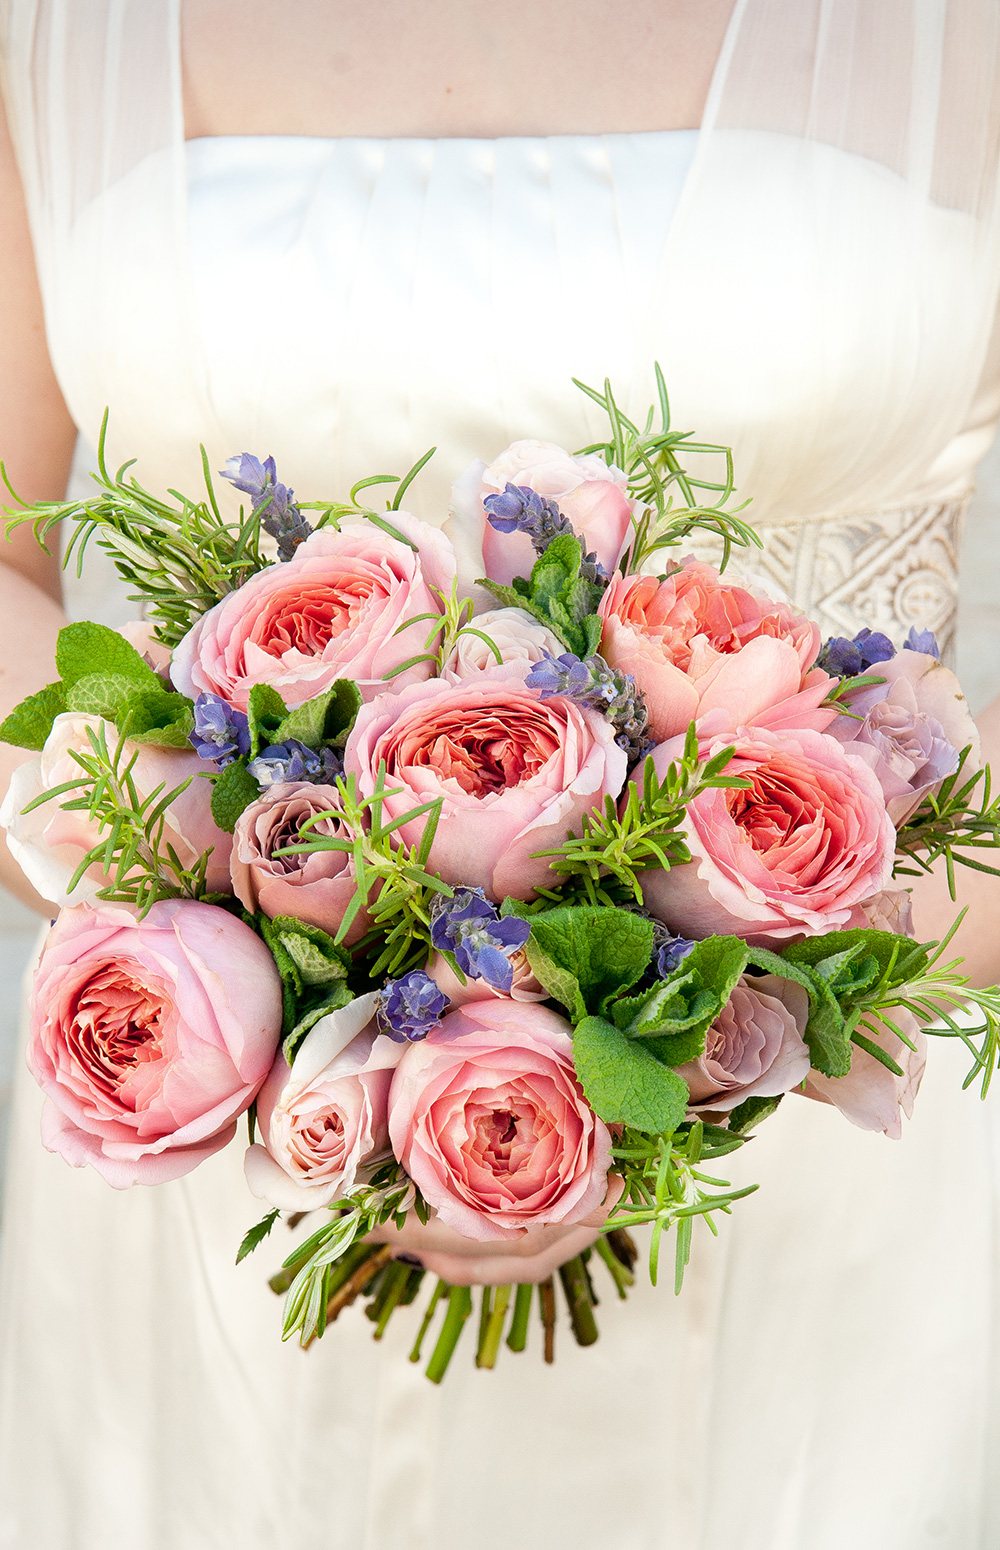 Wedding Florist South East England The Real Flower Company Offering ...